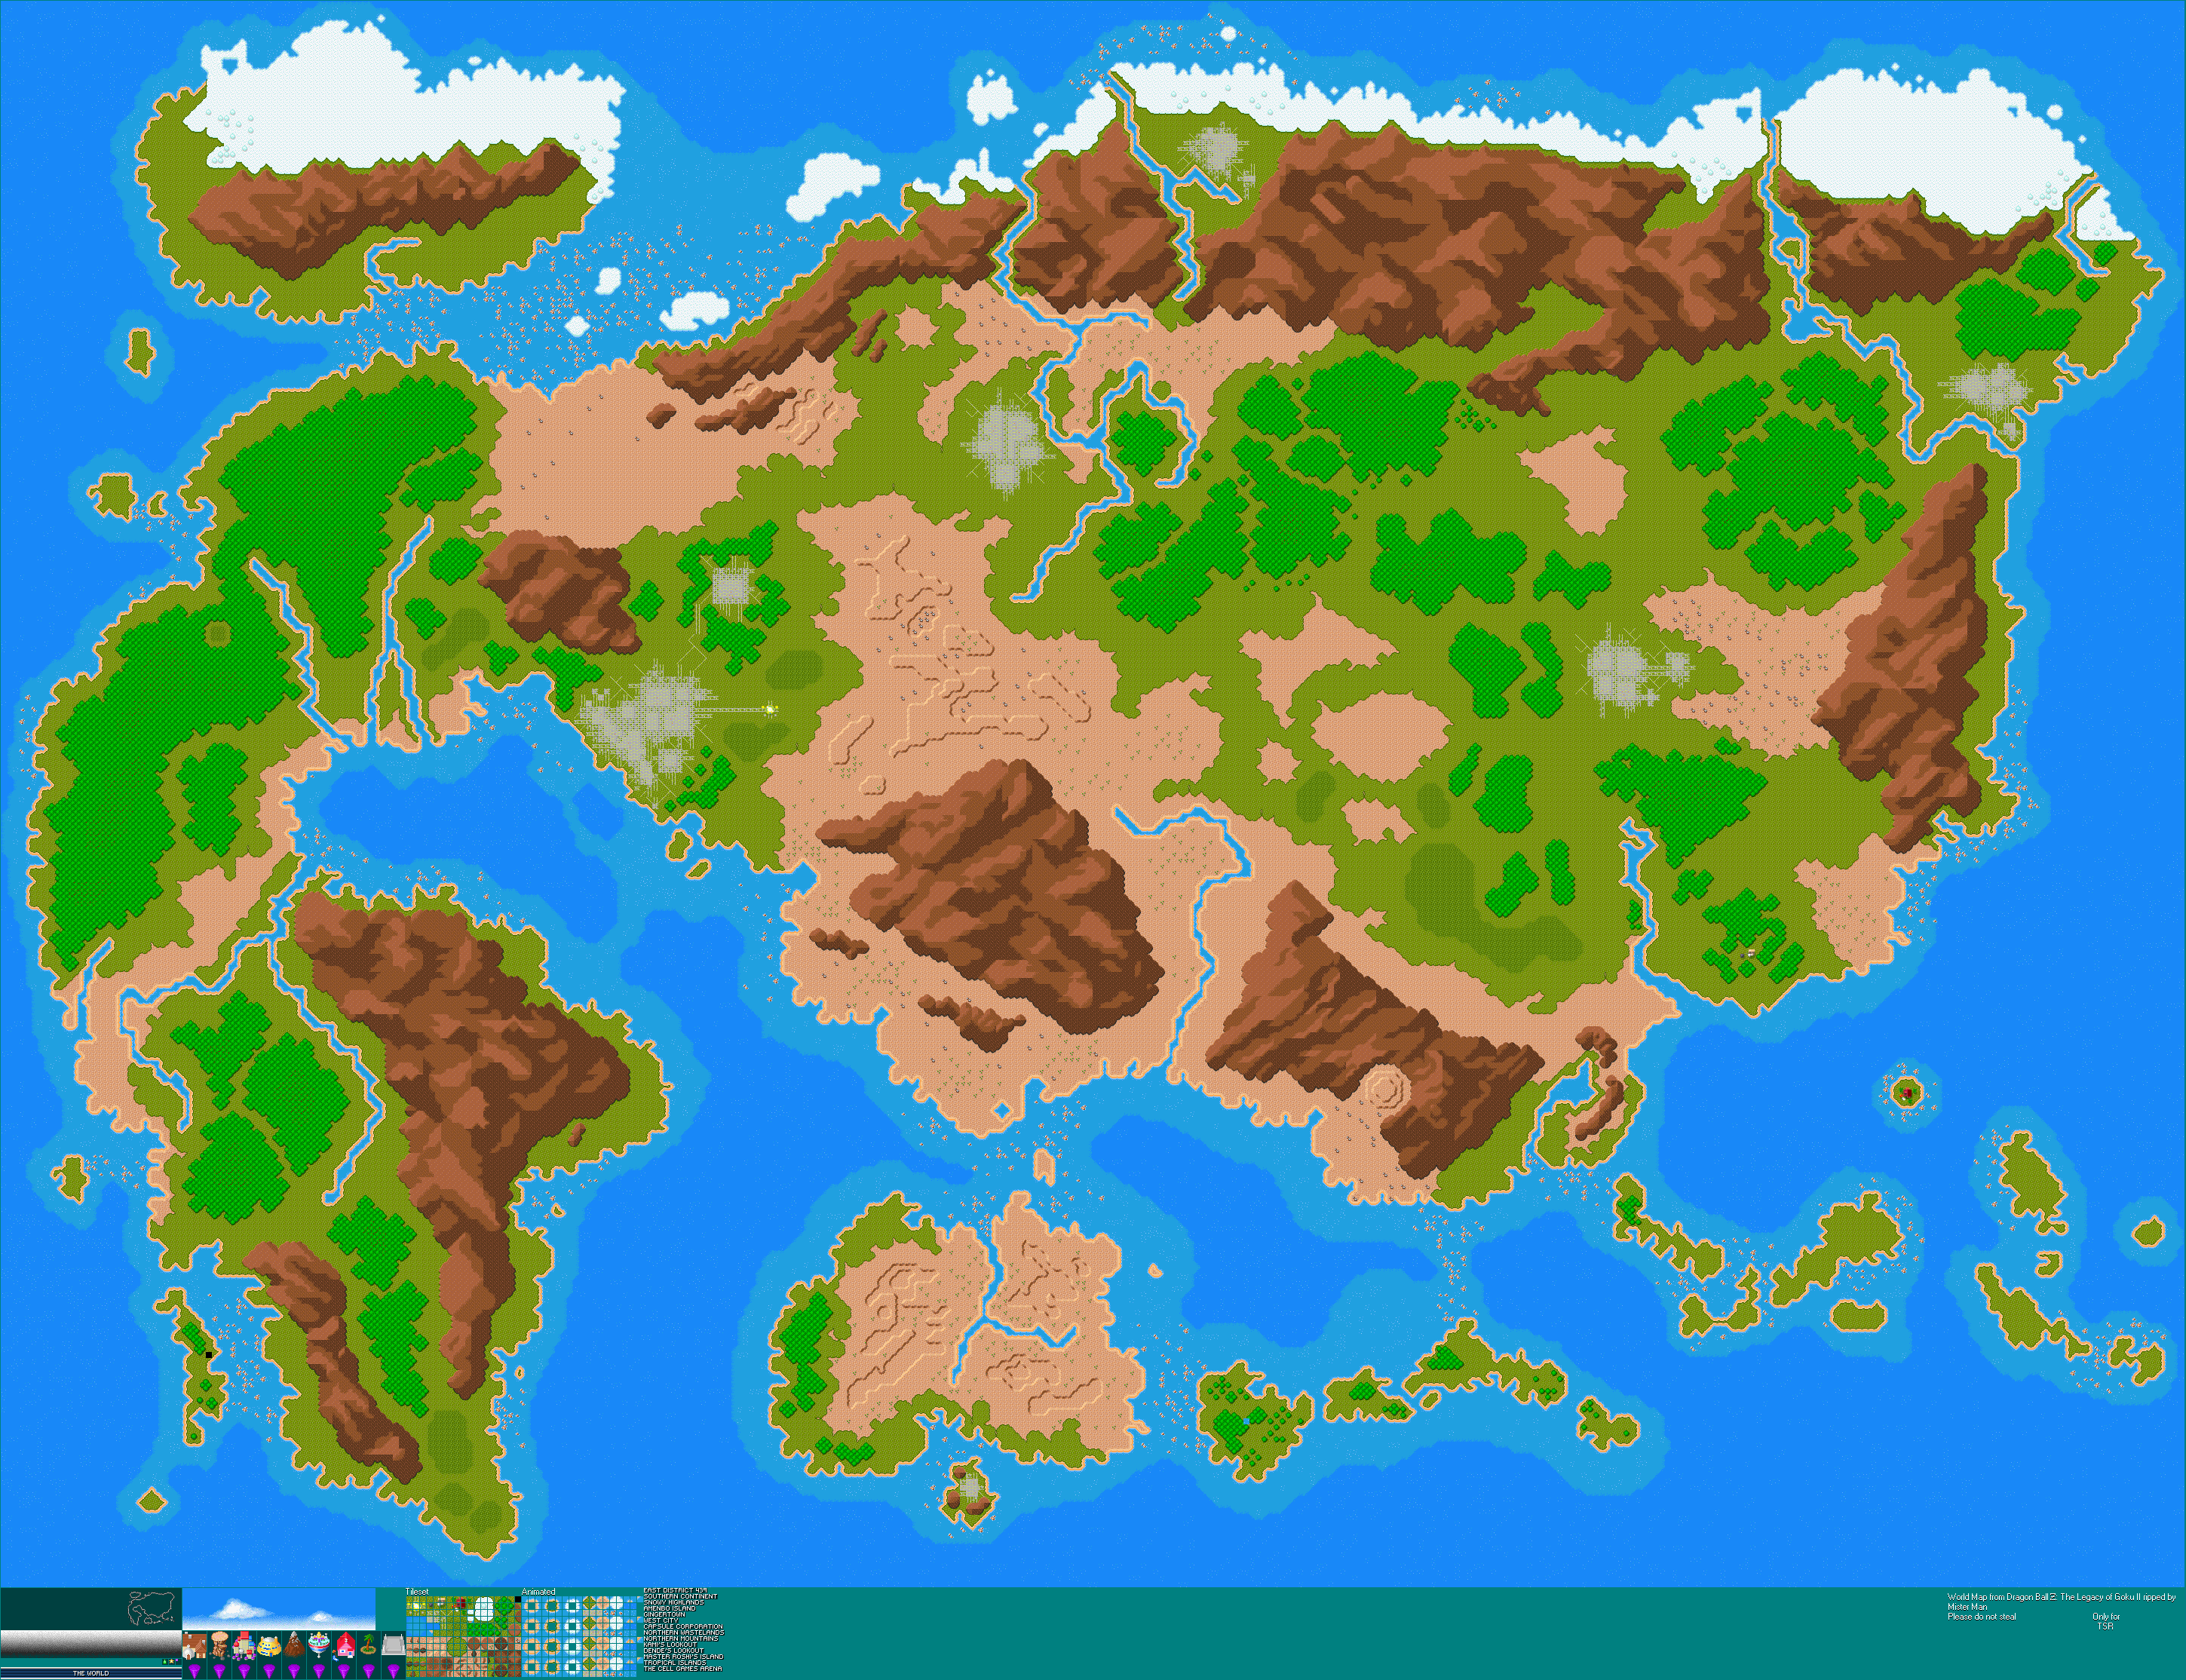 Game boy advance dragon ball z the legacy of goku ii world map click for full sized image world map gumiabroncs Images